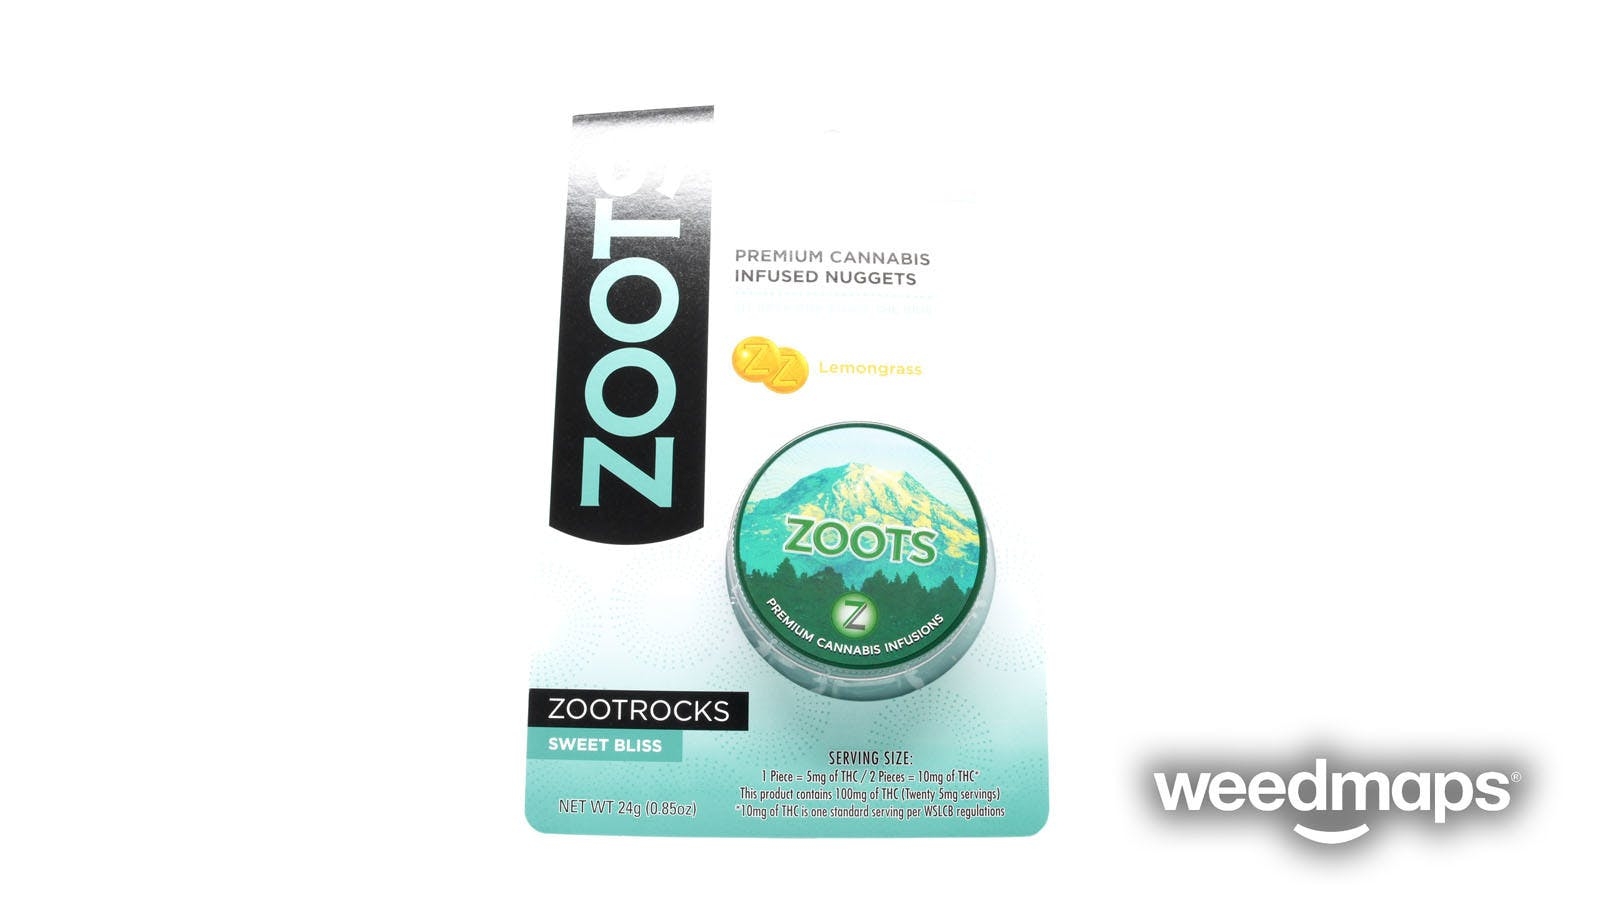 edible-7bzoots-7d-zootrocks-cbd-201-lemongrass-hard-candies-10pk